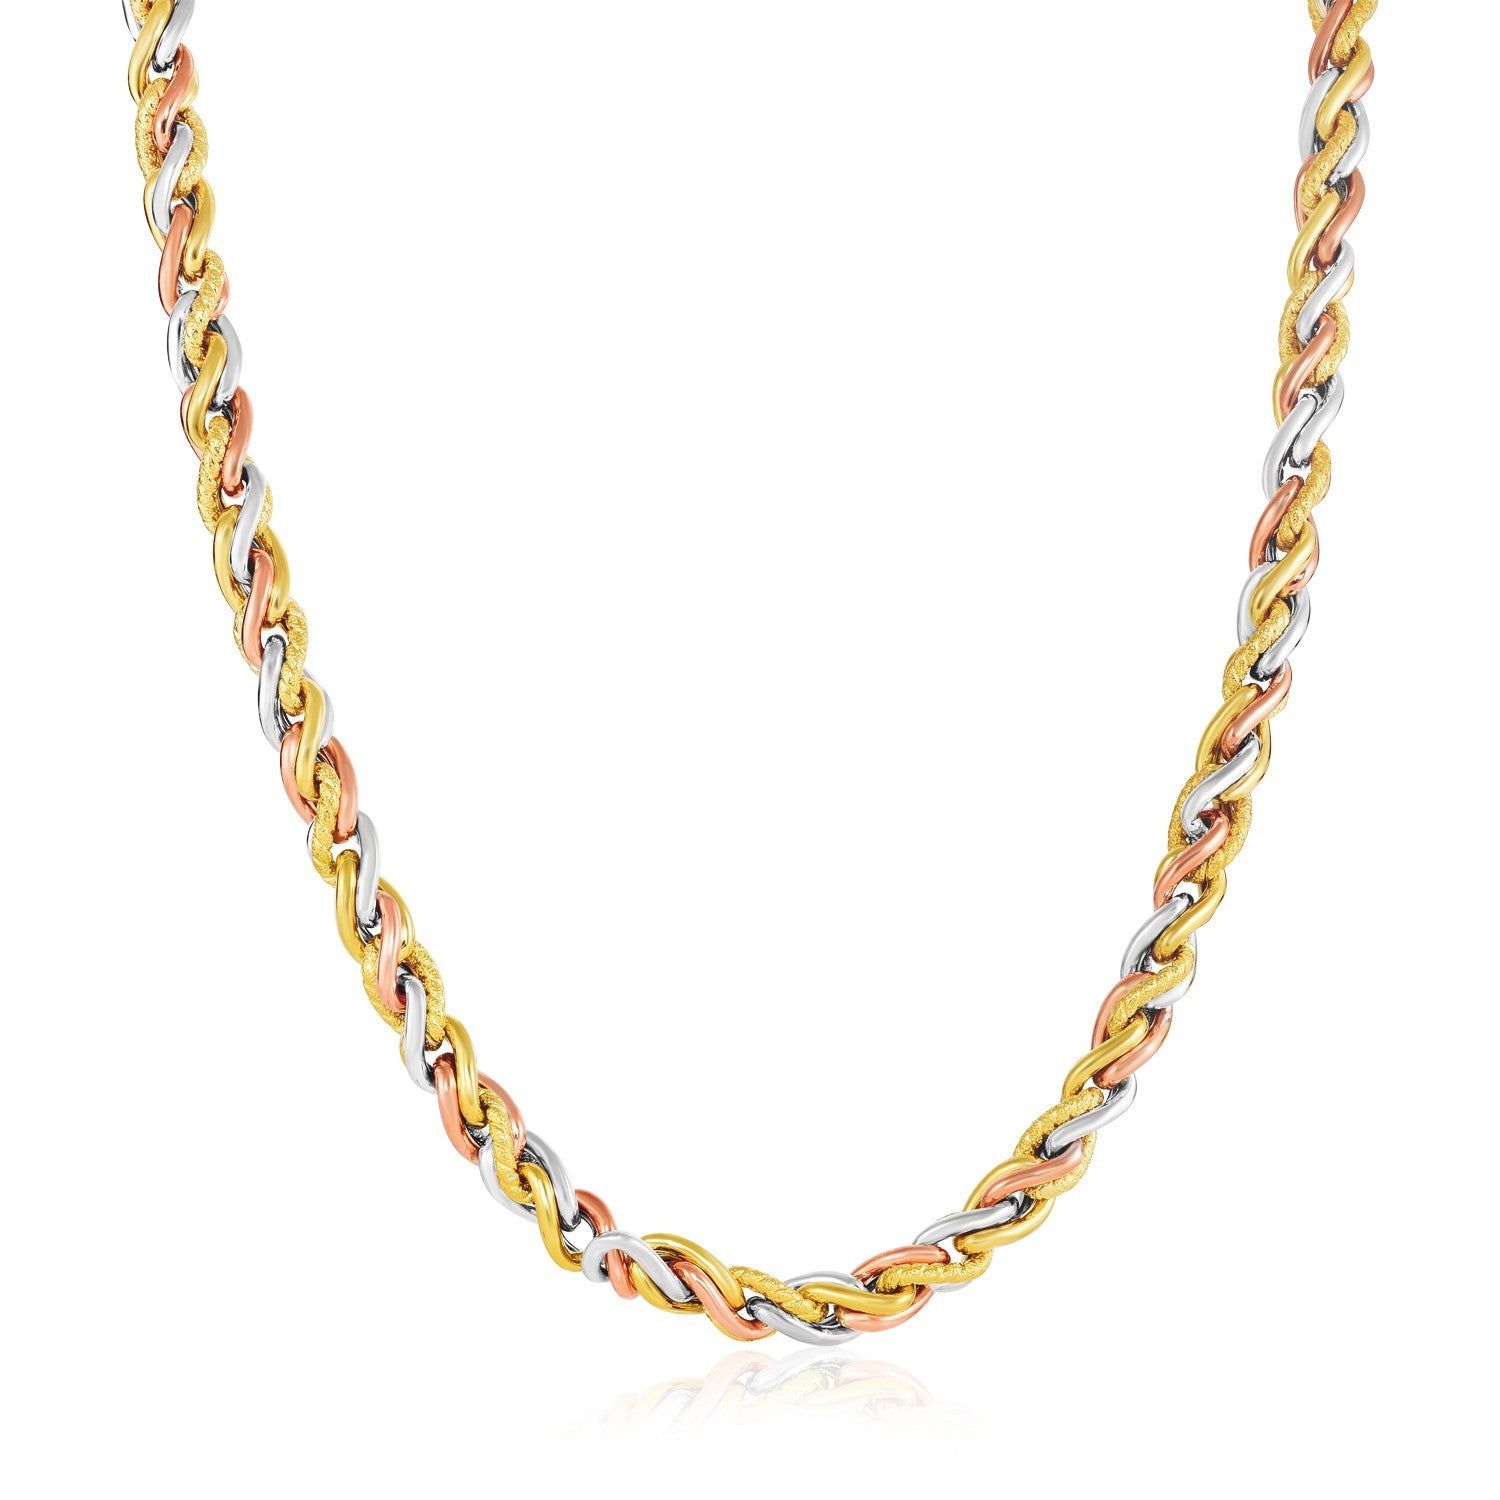 long link new gold necklace arrivals yellow shop rope chains ladies chain sparkle twisted